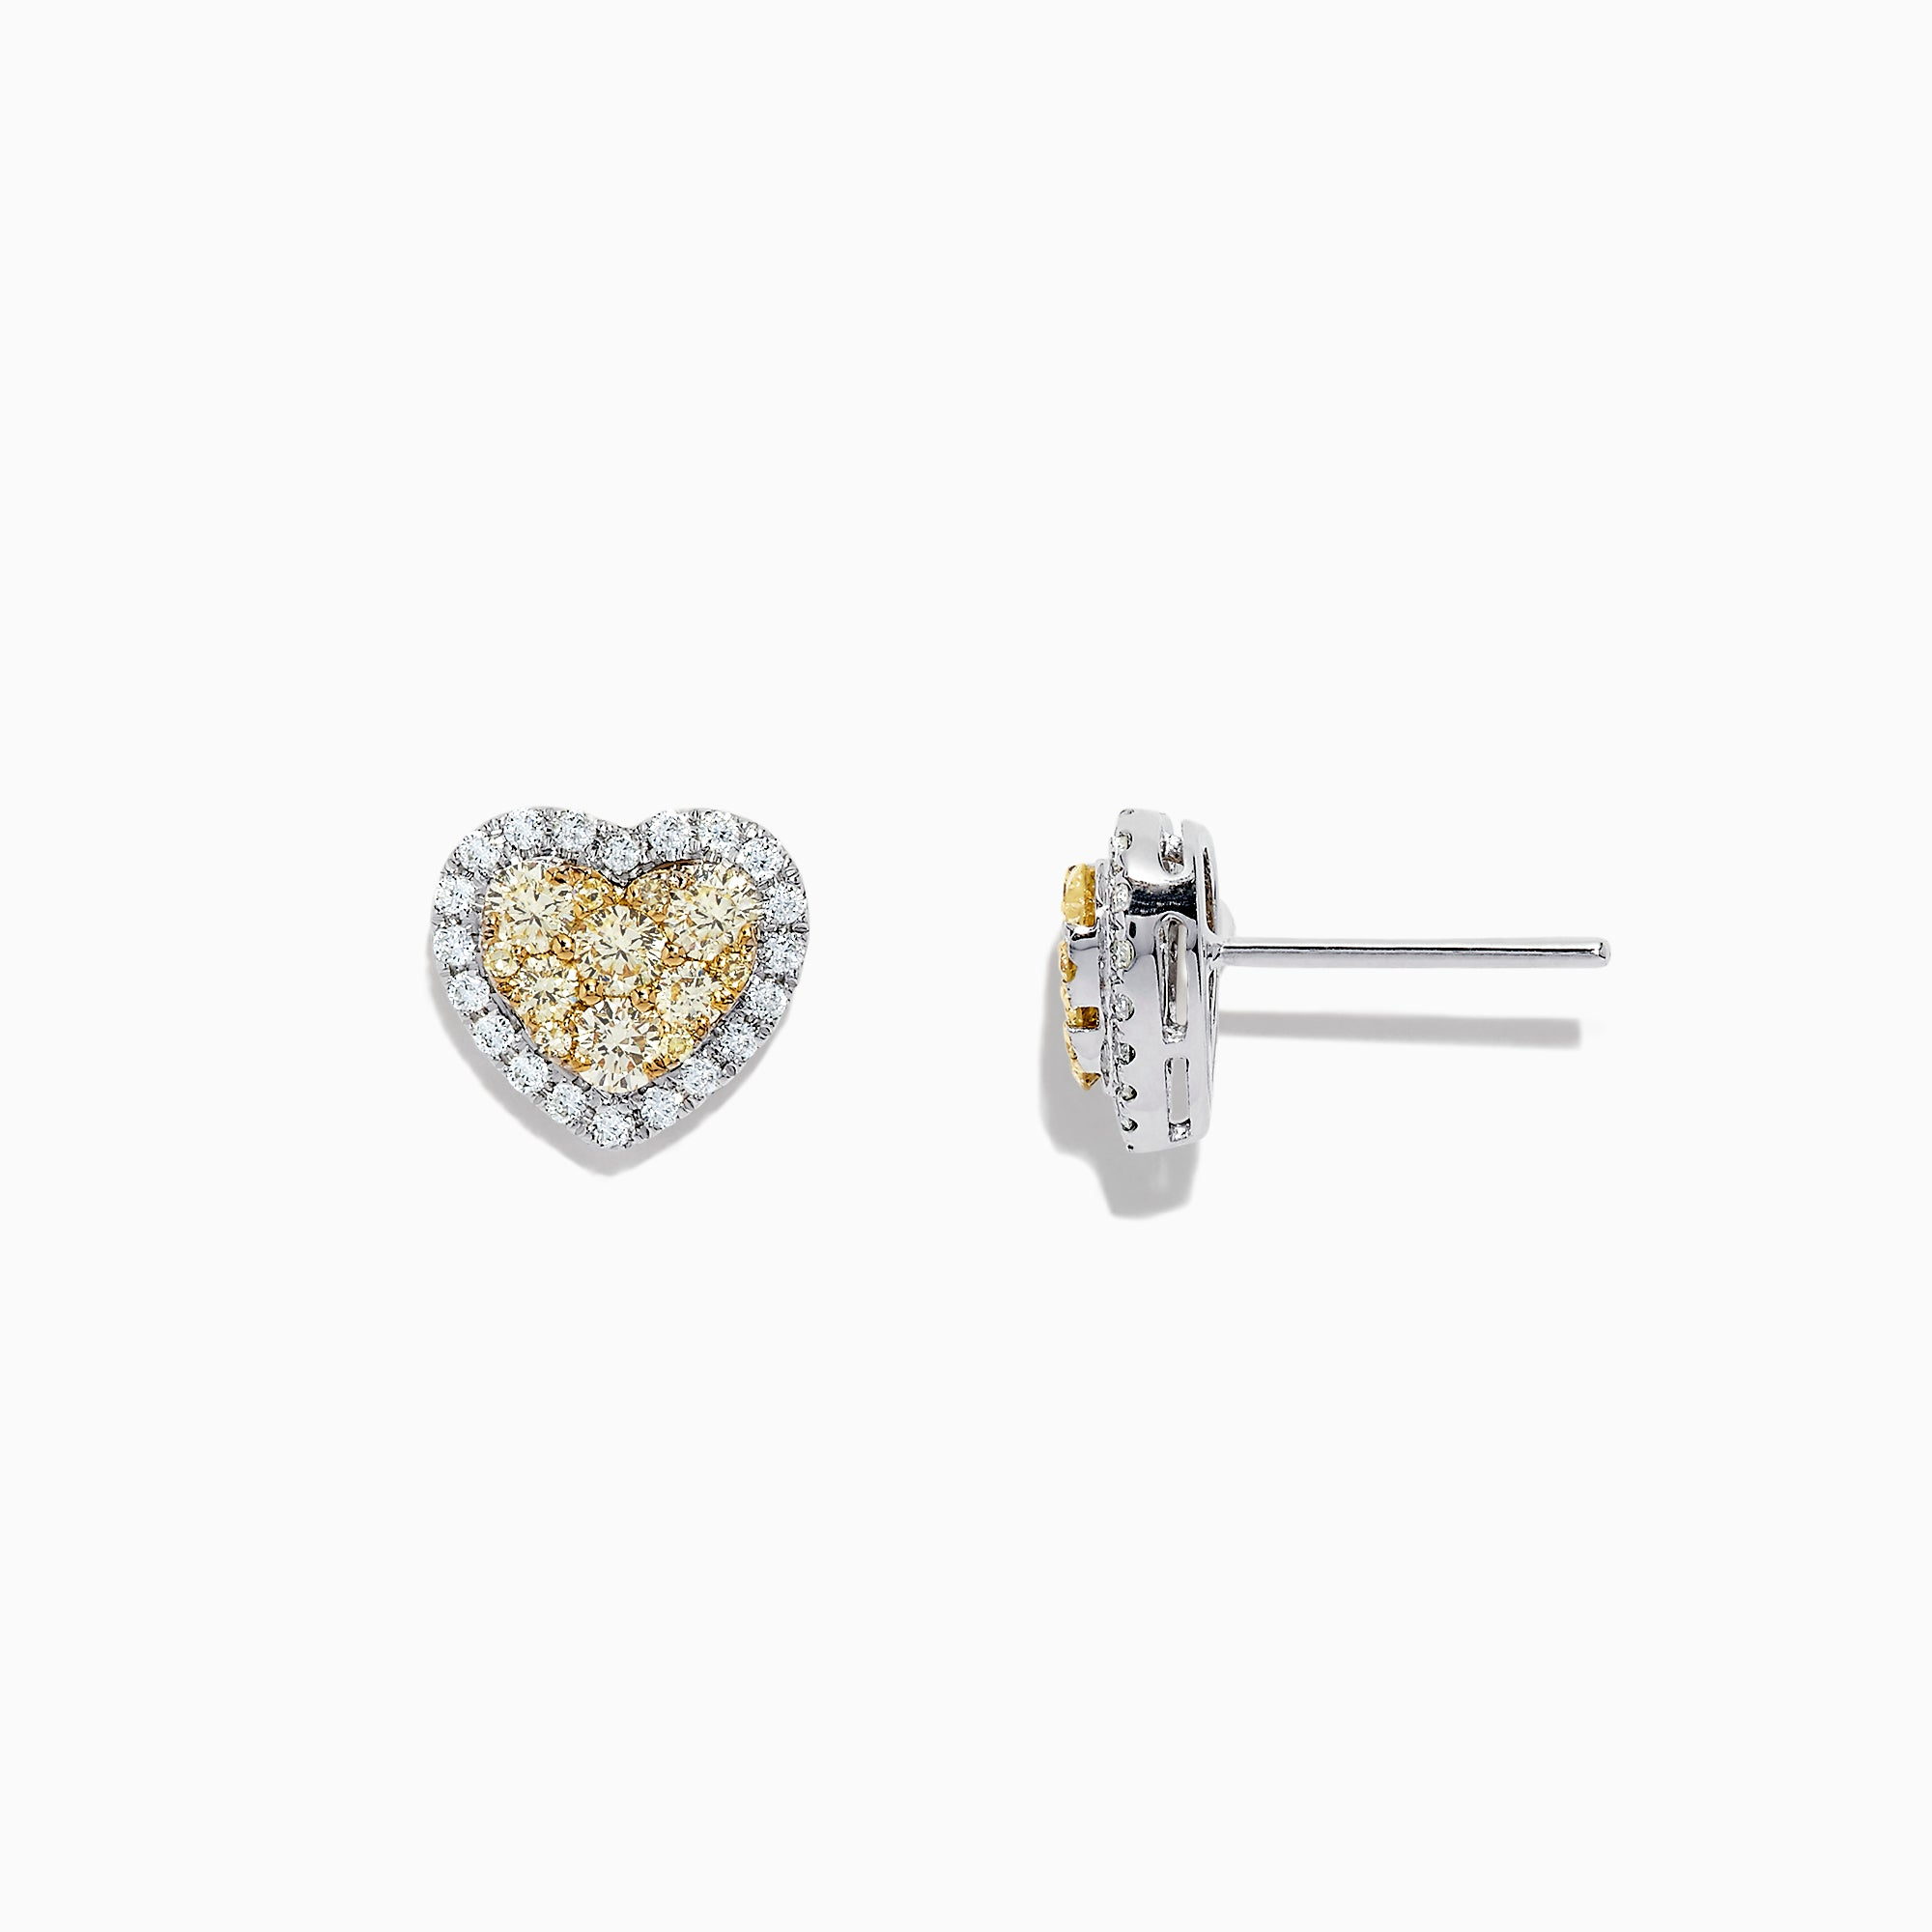 Effy Canare 14K Two Tone Gold Yellow and White Diamond Heart Earrings, 0.96 TCW